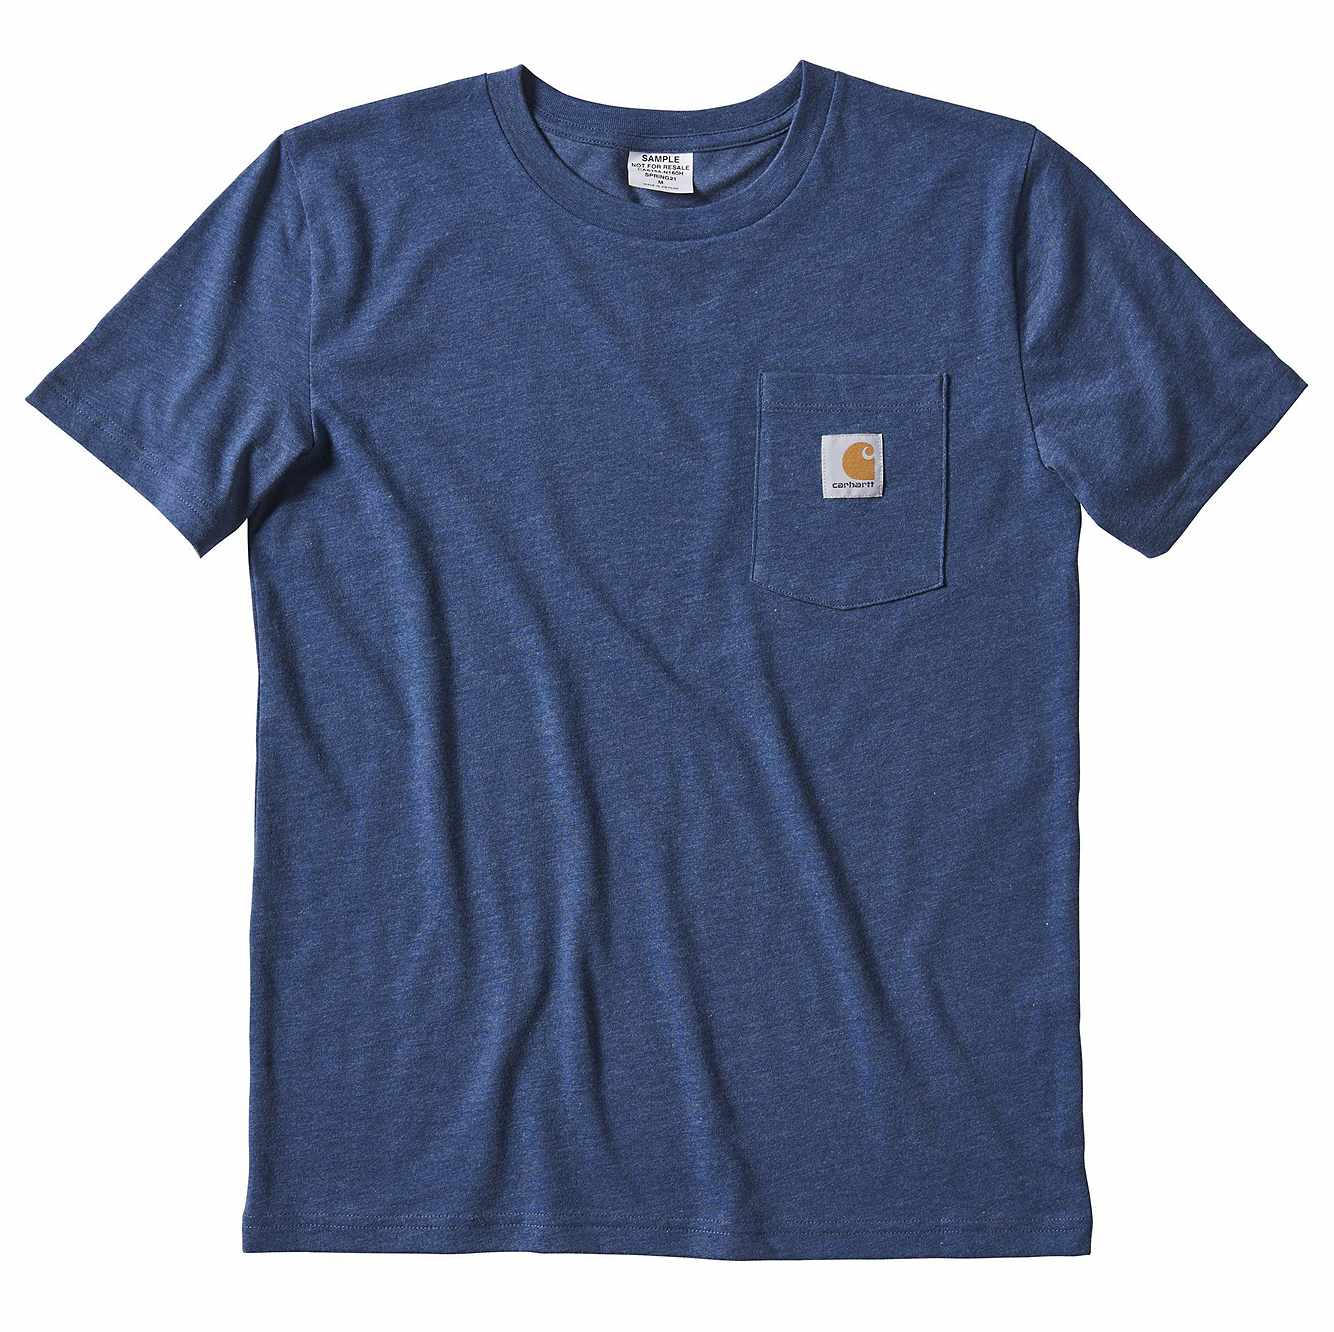 Picture of Kids Loose Fit Heavyweight Short-Sleeve Pocket T-Shirt in Denim Heather